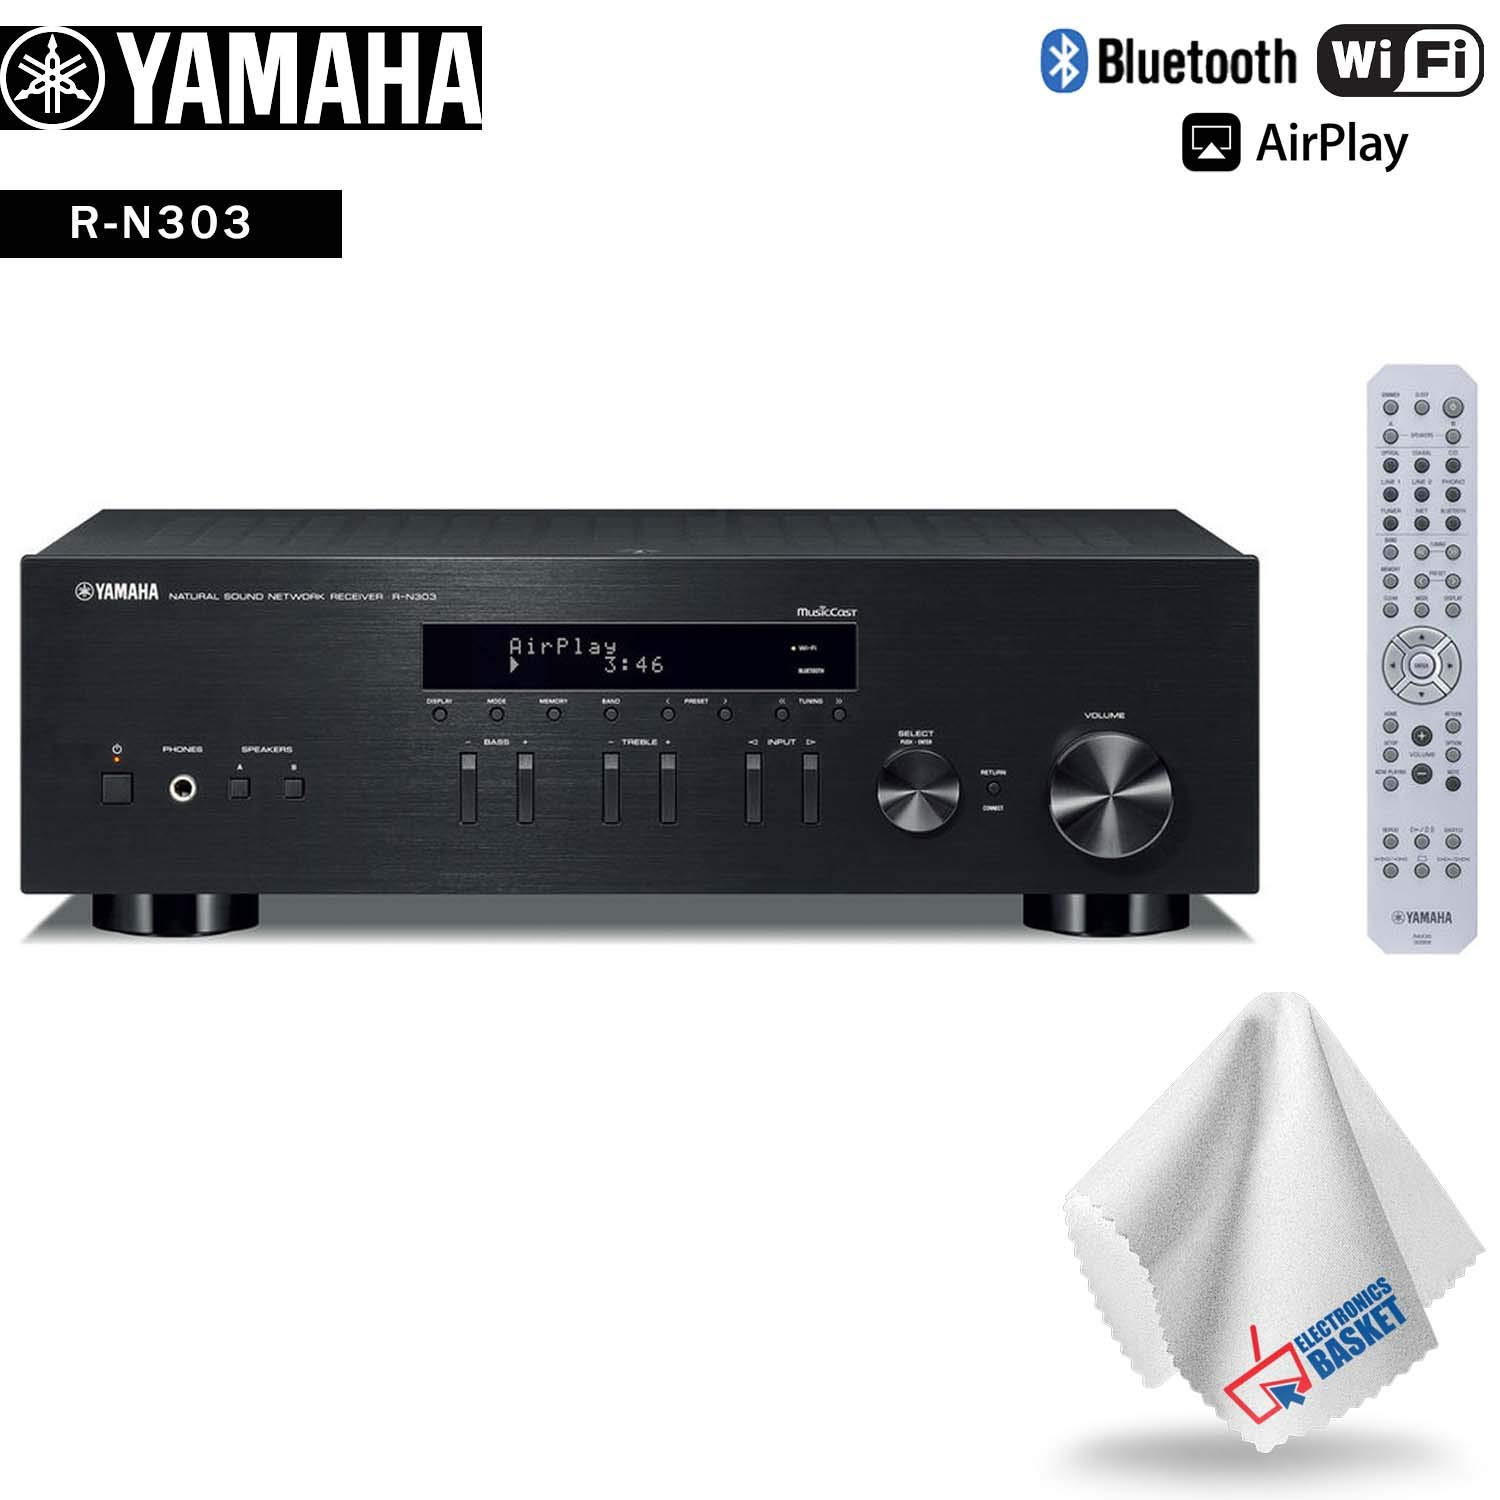 Yamaha R-N303 Stereo Network Receiver Accessory Kit - Includes - Cleaning Cloth